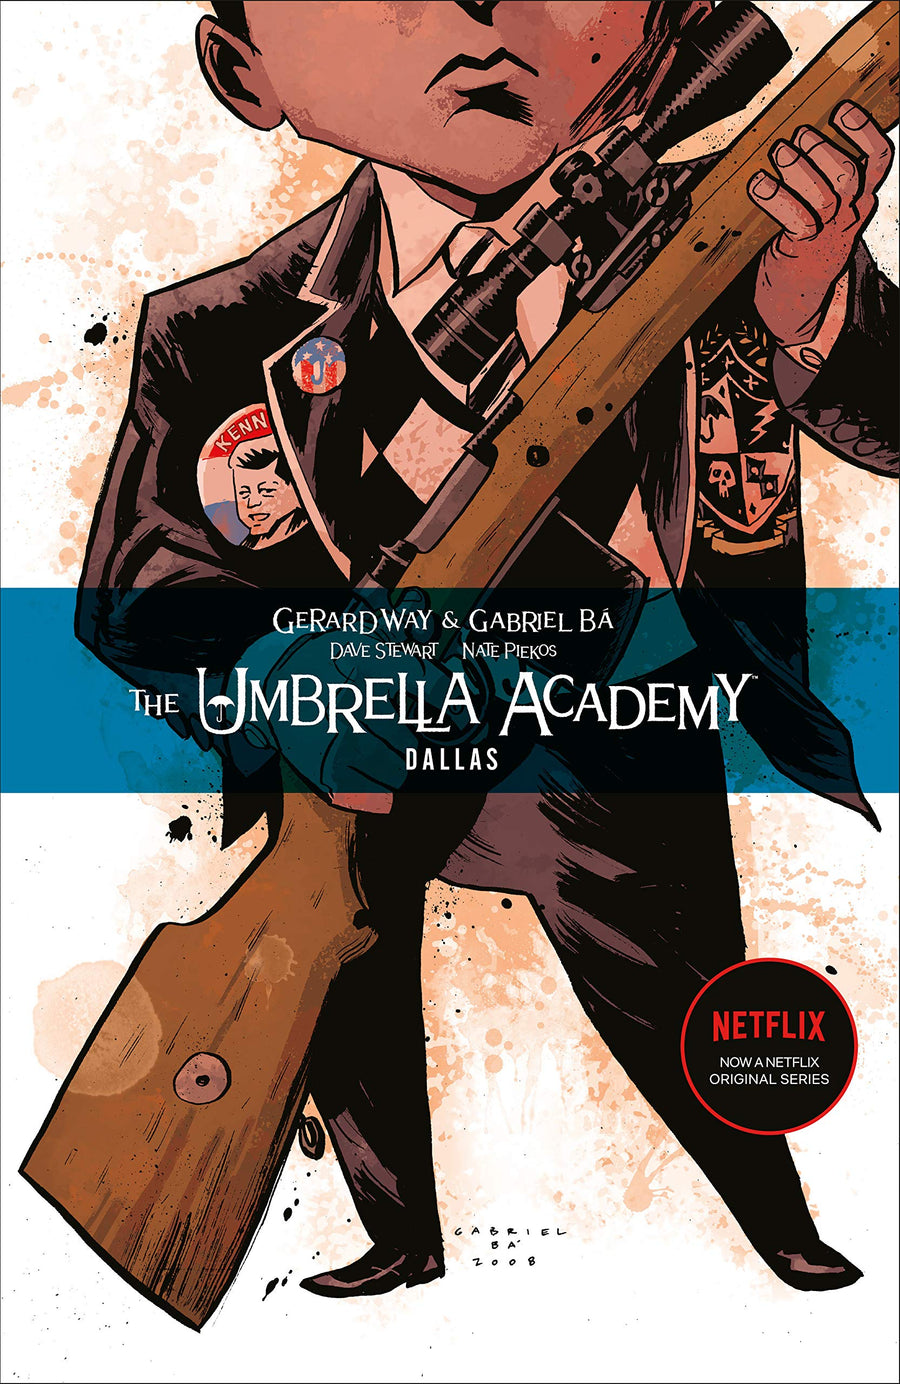 Umbrella Academy Volume 2 Dallas